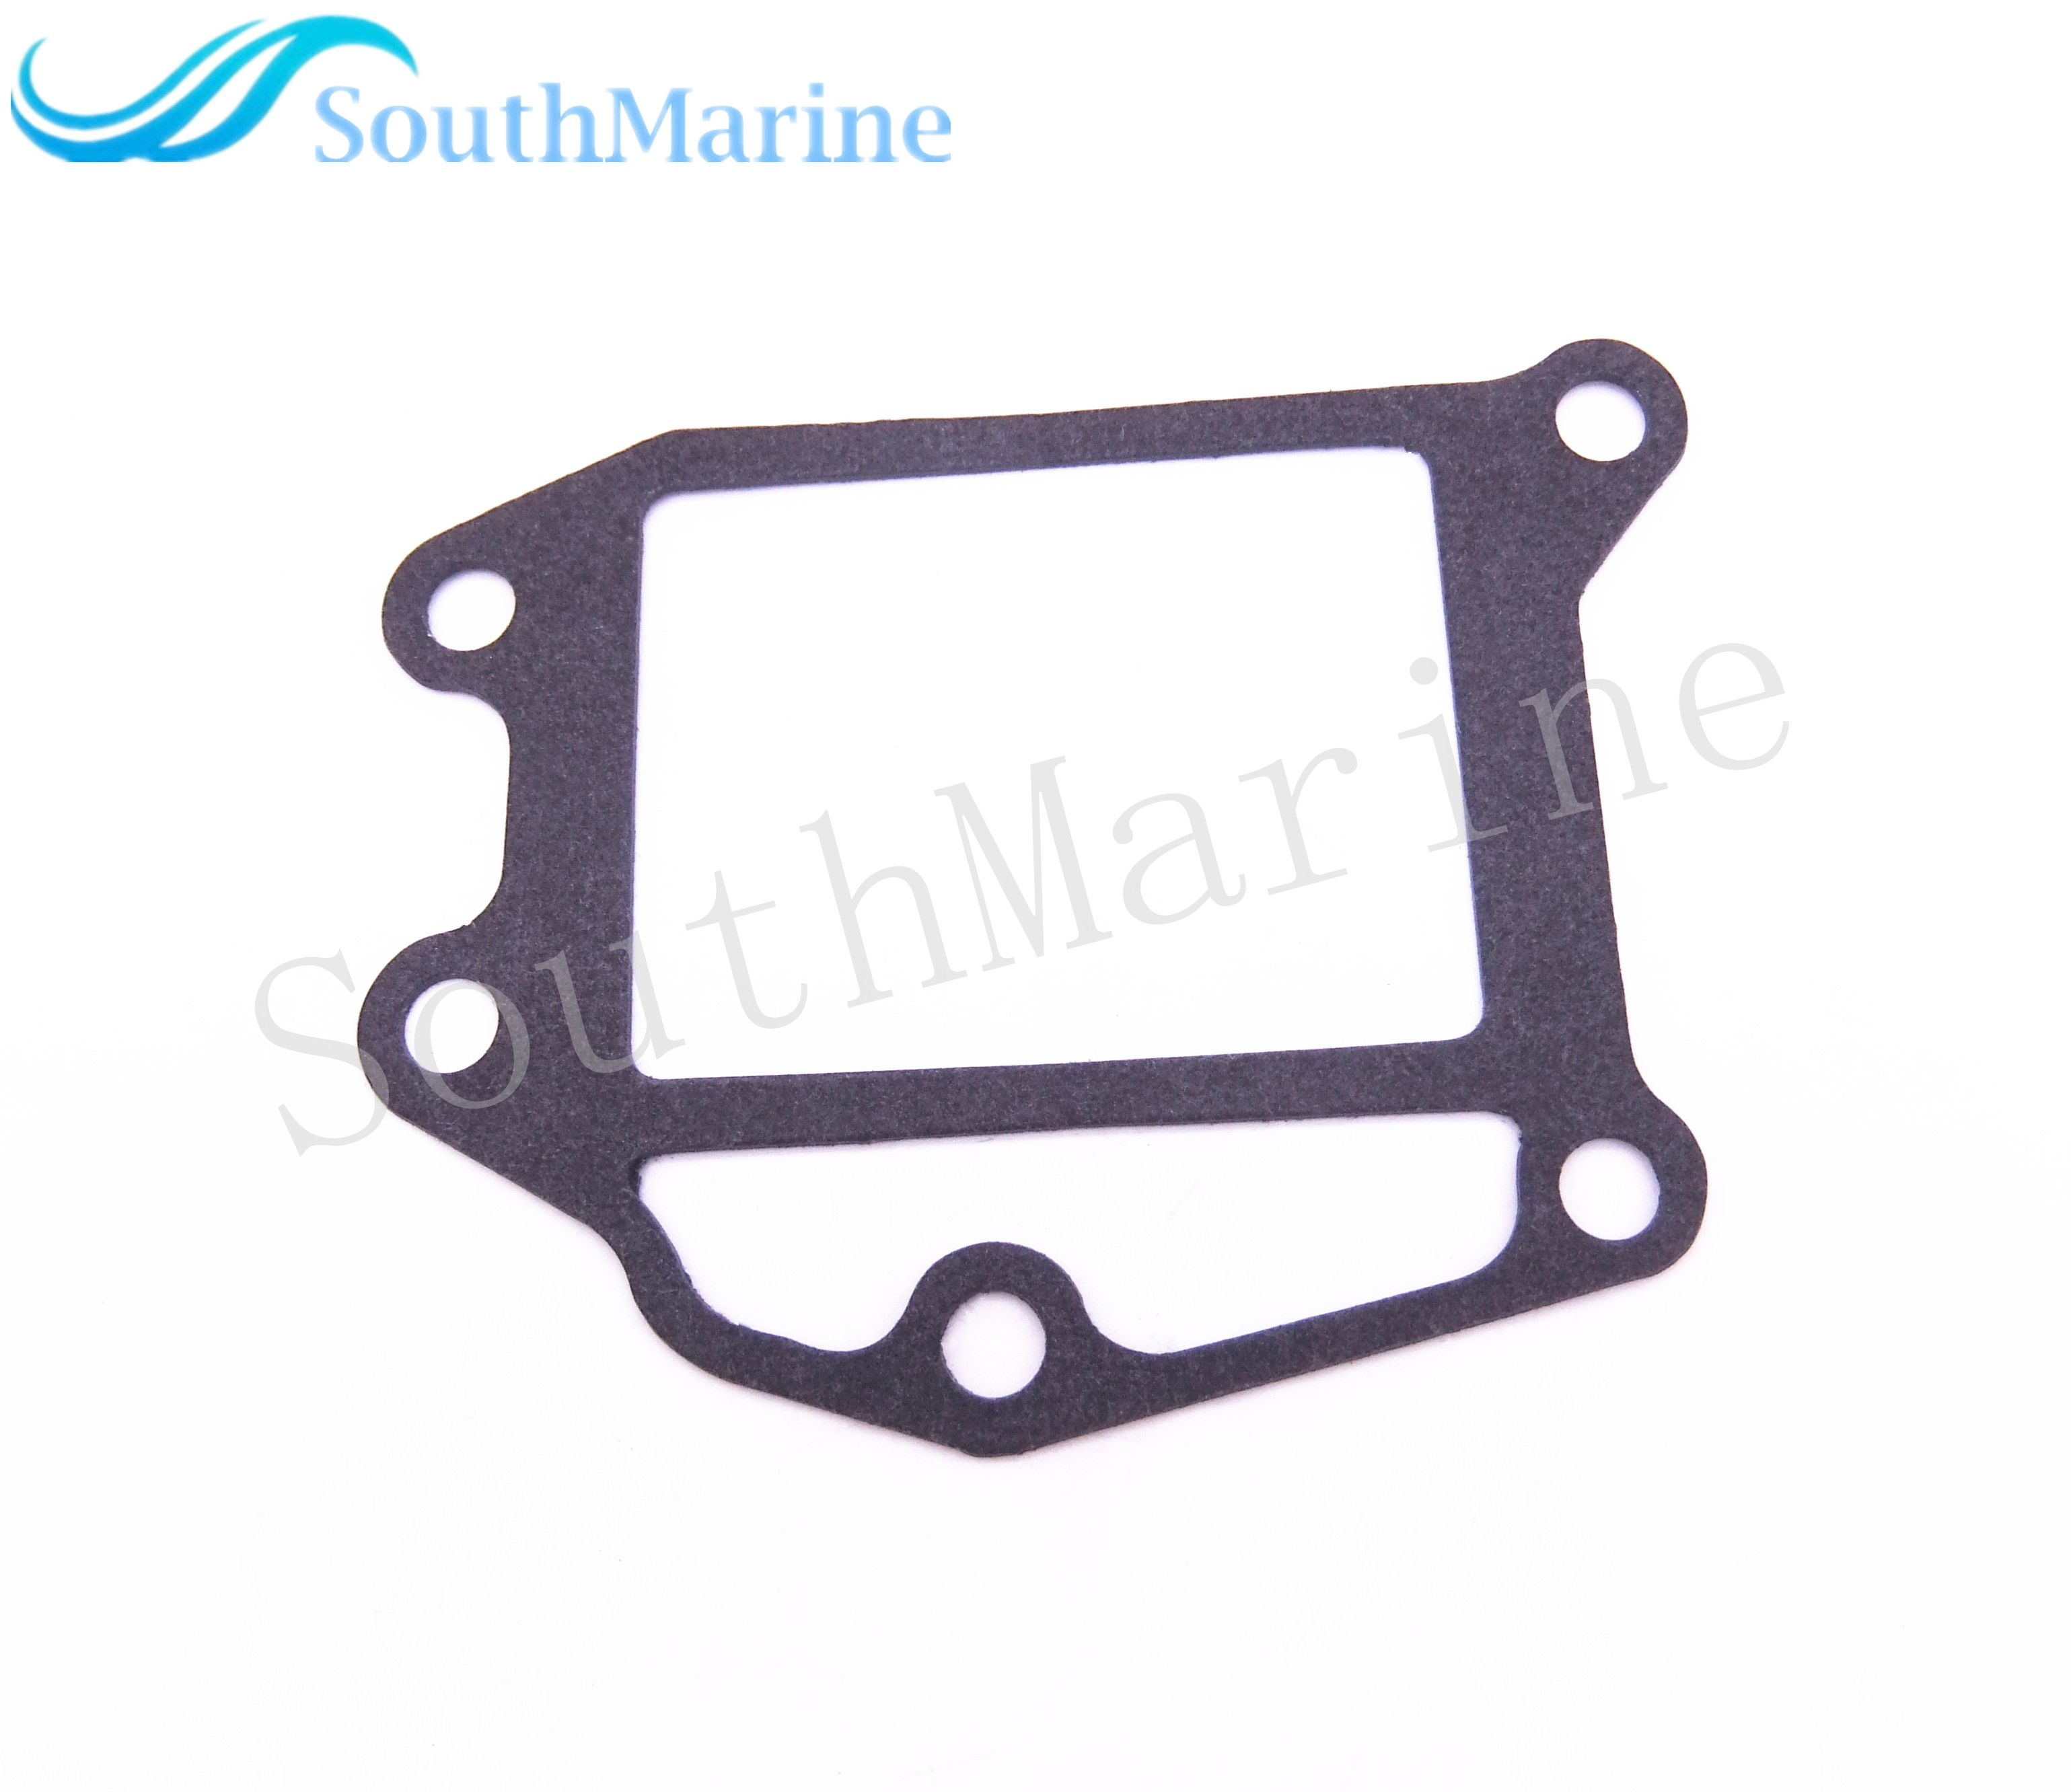 Boat Motor 63v 41133 A1 Exhaust Manifold Gasket For Yamaha 2 Stroke 9 9hp 15hp 63v Outboard Engine Boat Accessories Outboard Boat